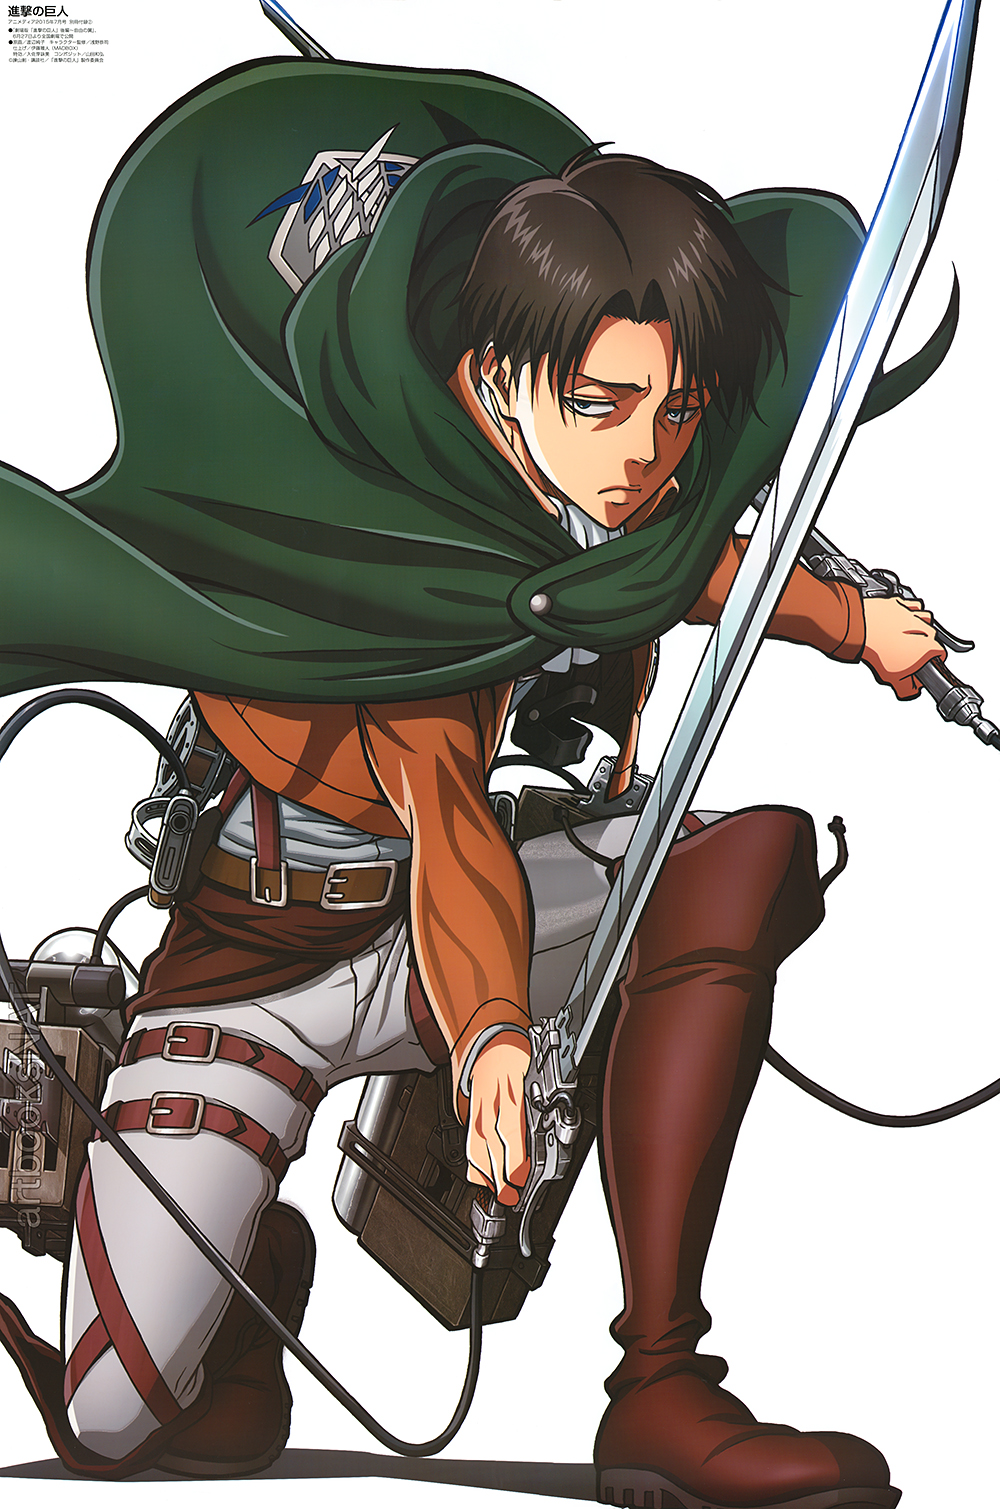 Glorious Levi Poster Revealed in Animedia